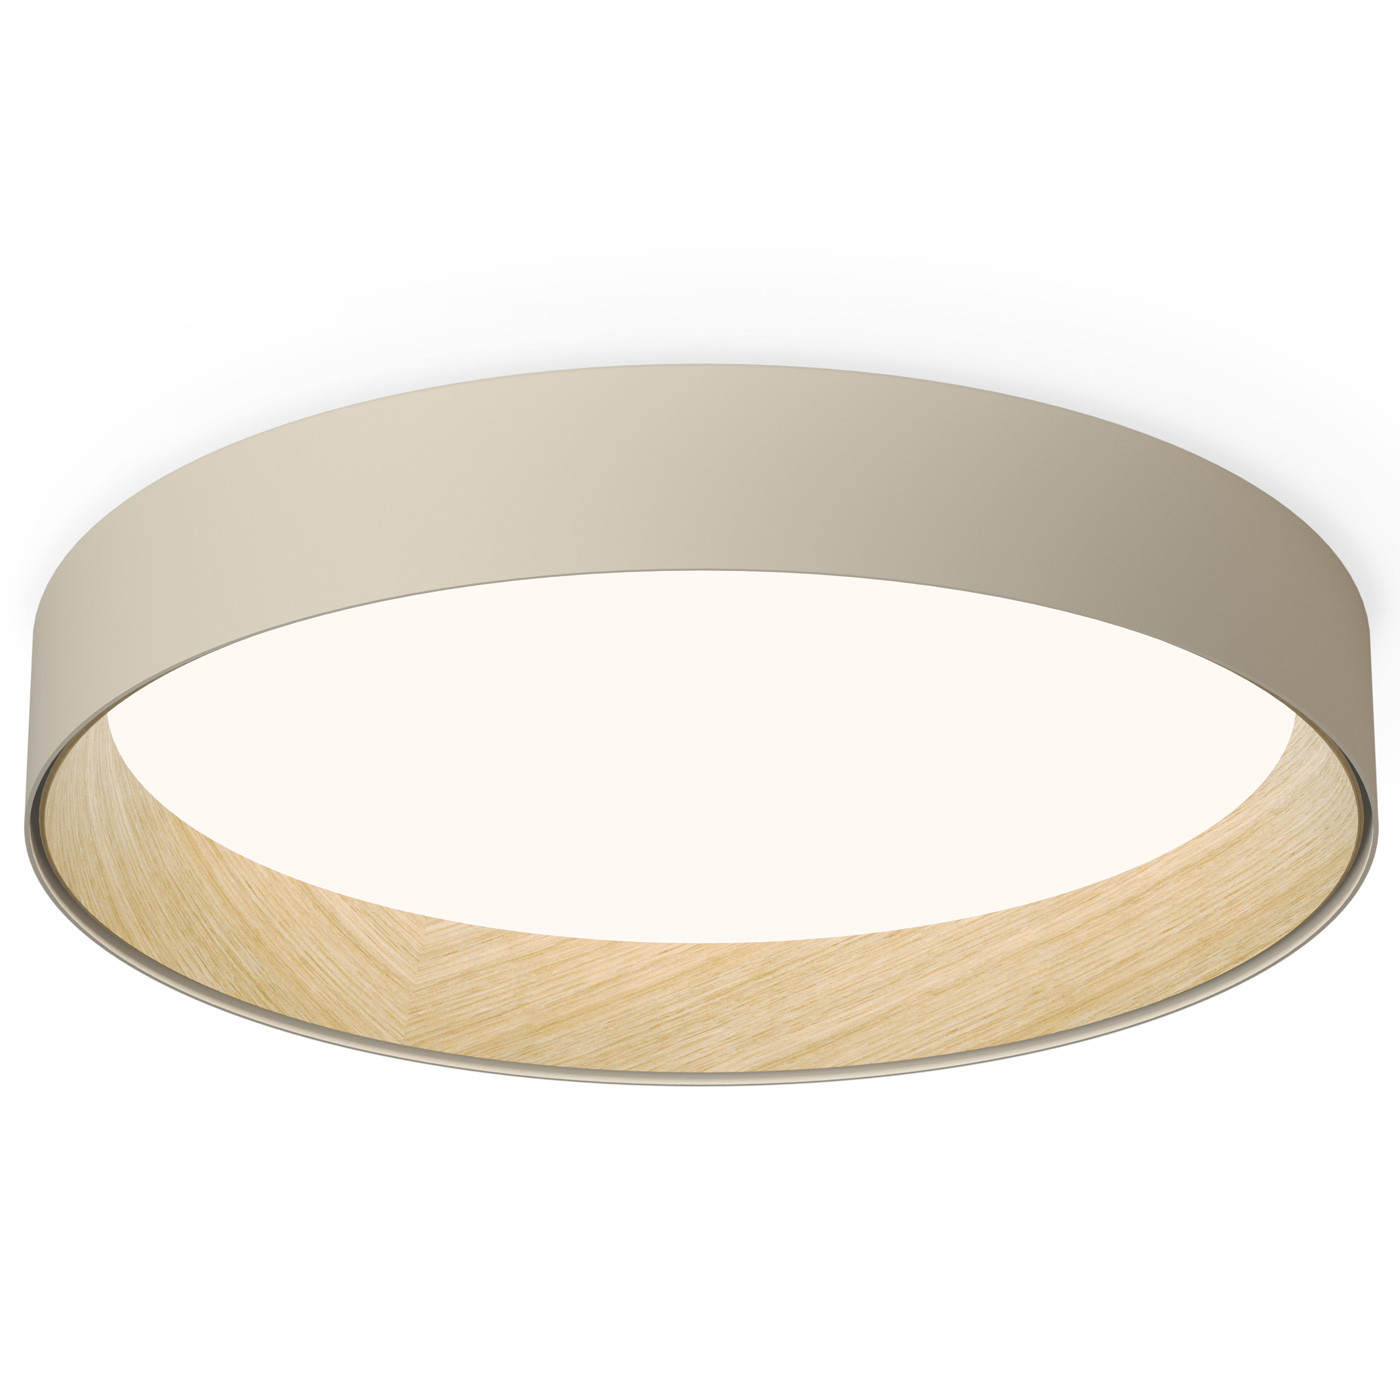 Vibia Duo 4872 Ceiling Light At Nostraforma